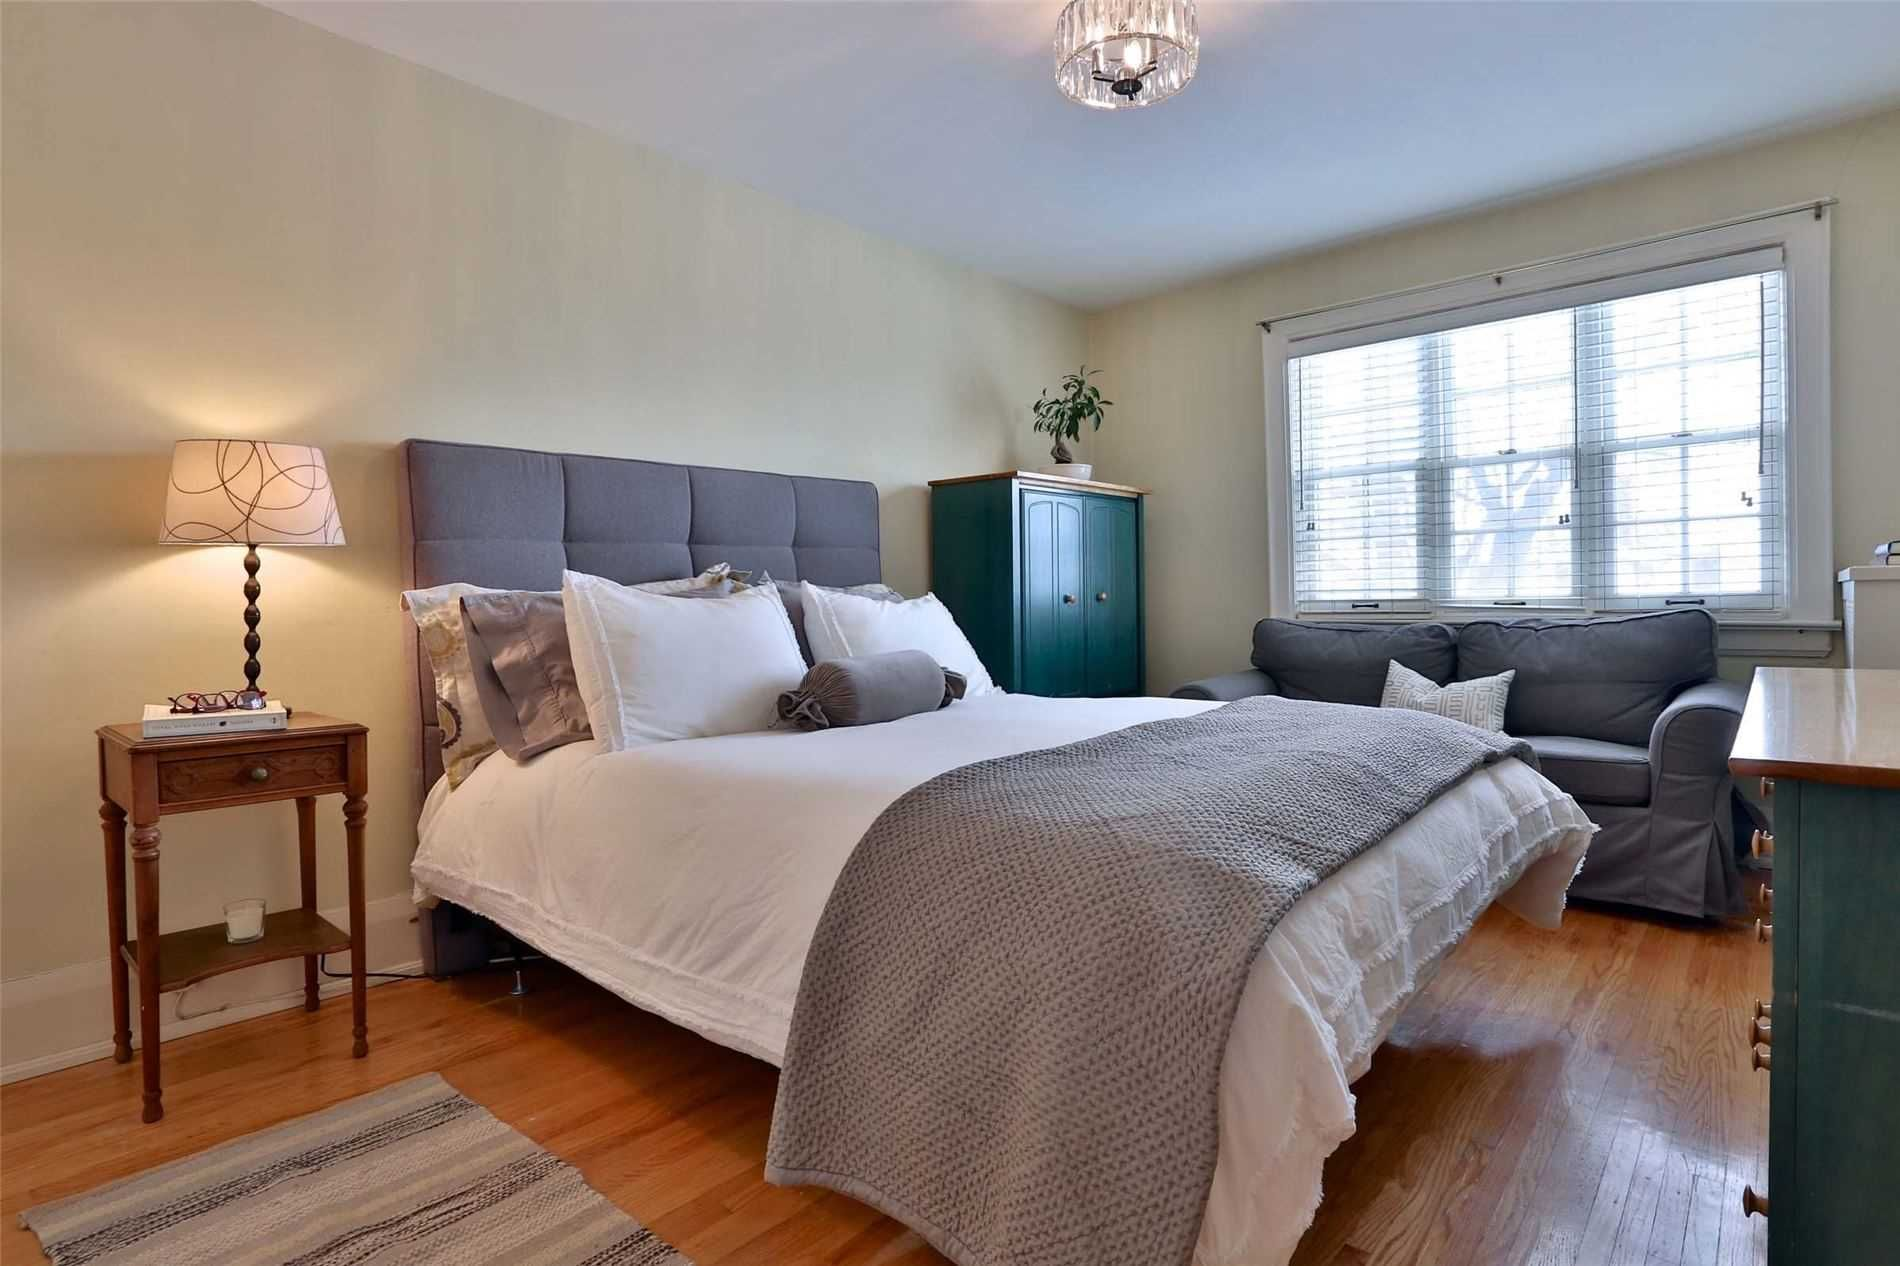 Photo 11: Photos: 15 Glen Castle Street in Toronto: Lawrence Park South House (2-Storey) for sale (Toronto C04)  : MLS®# C4704094